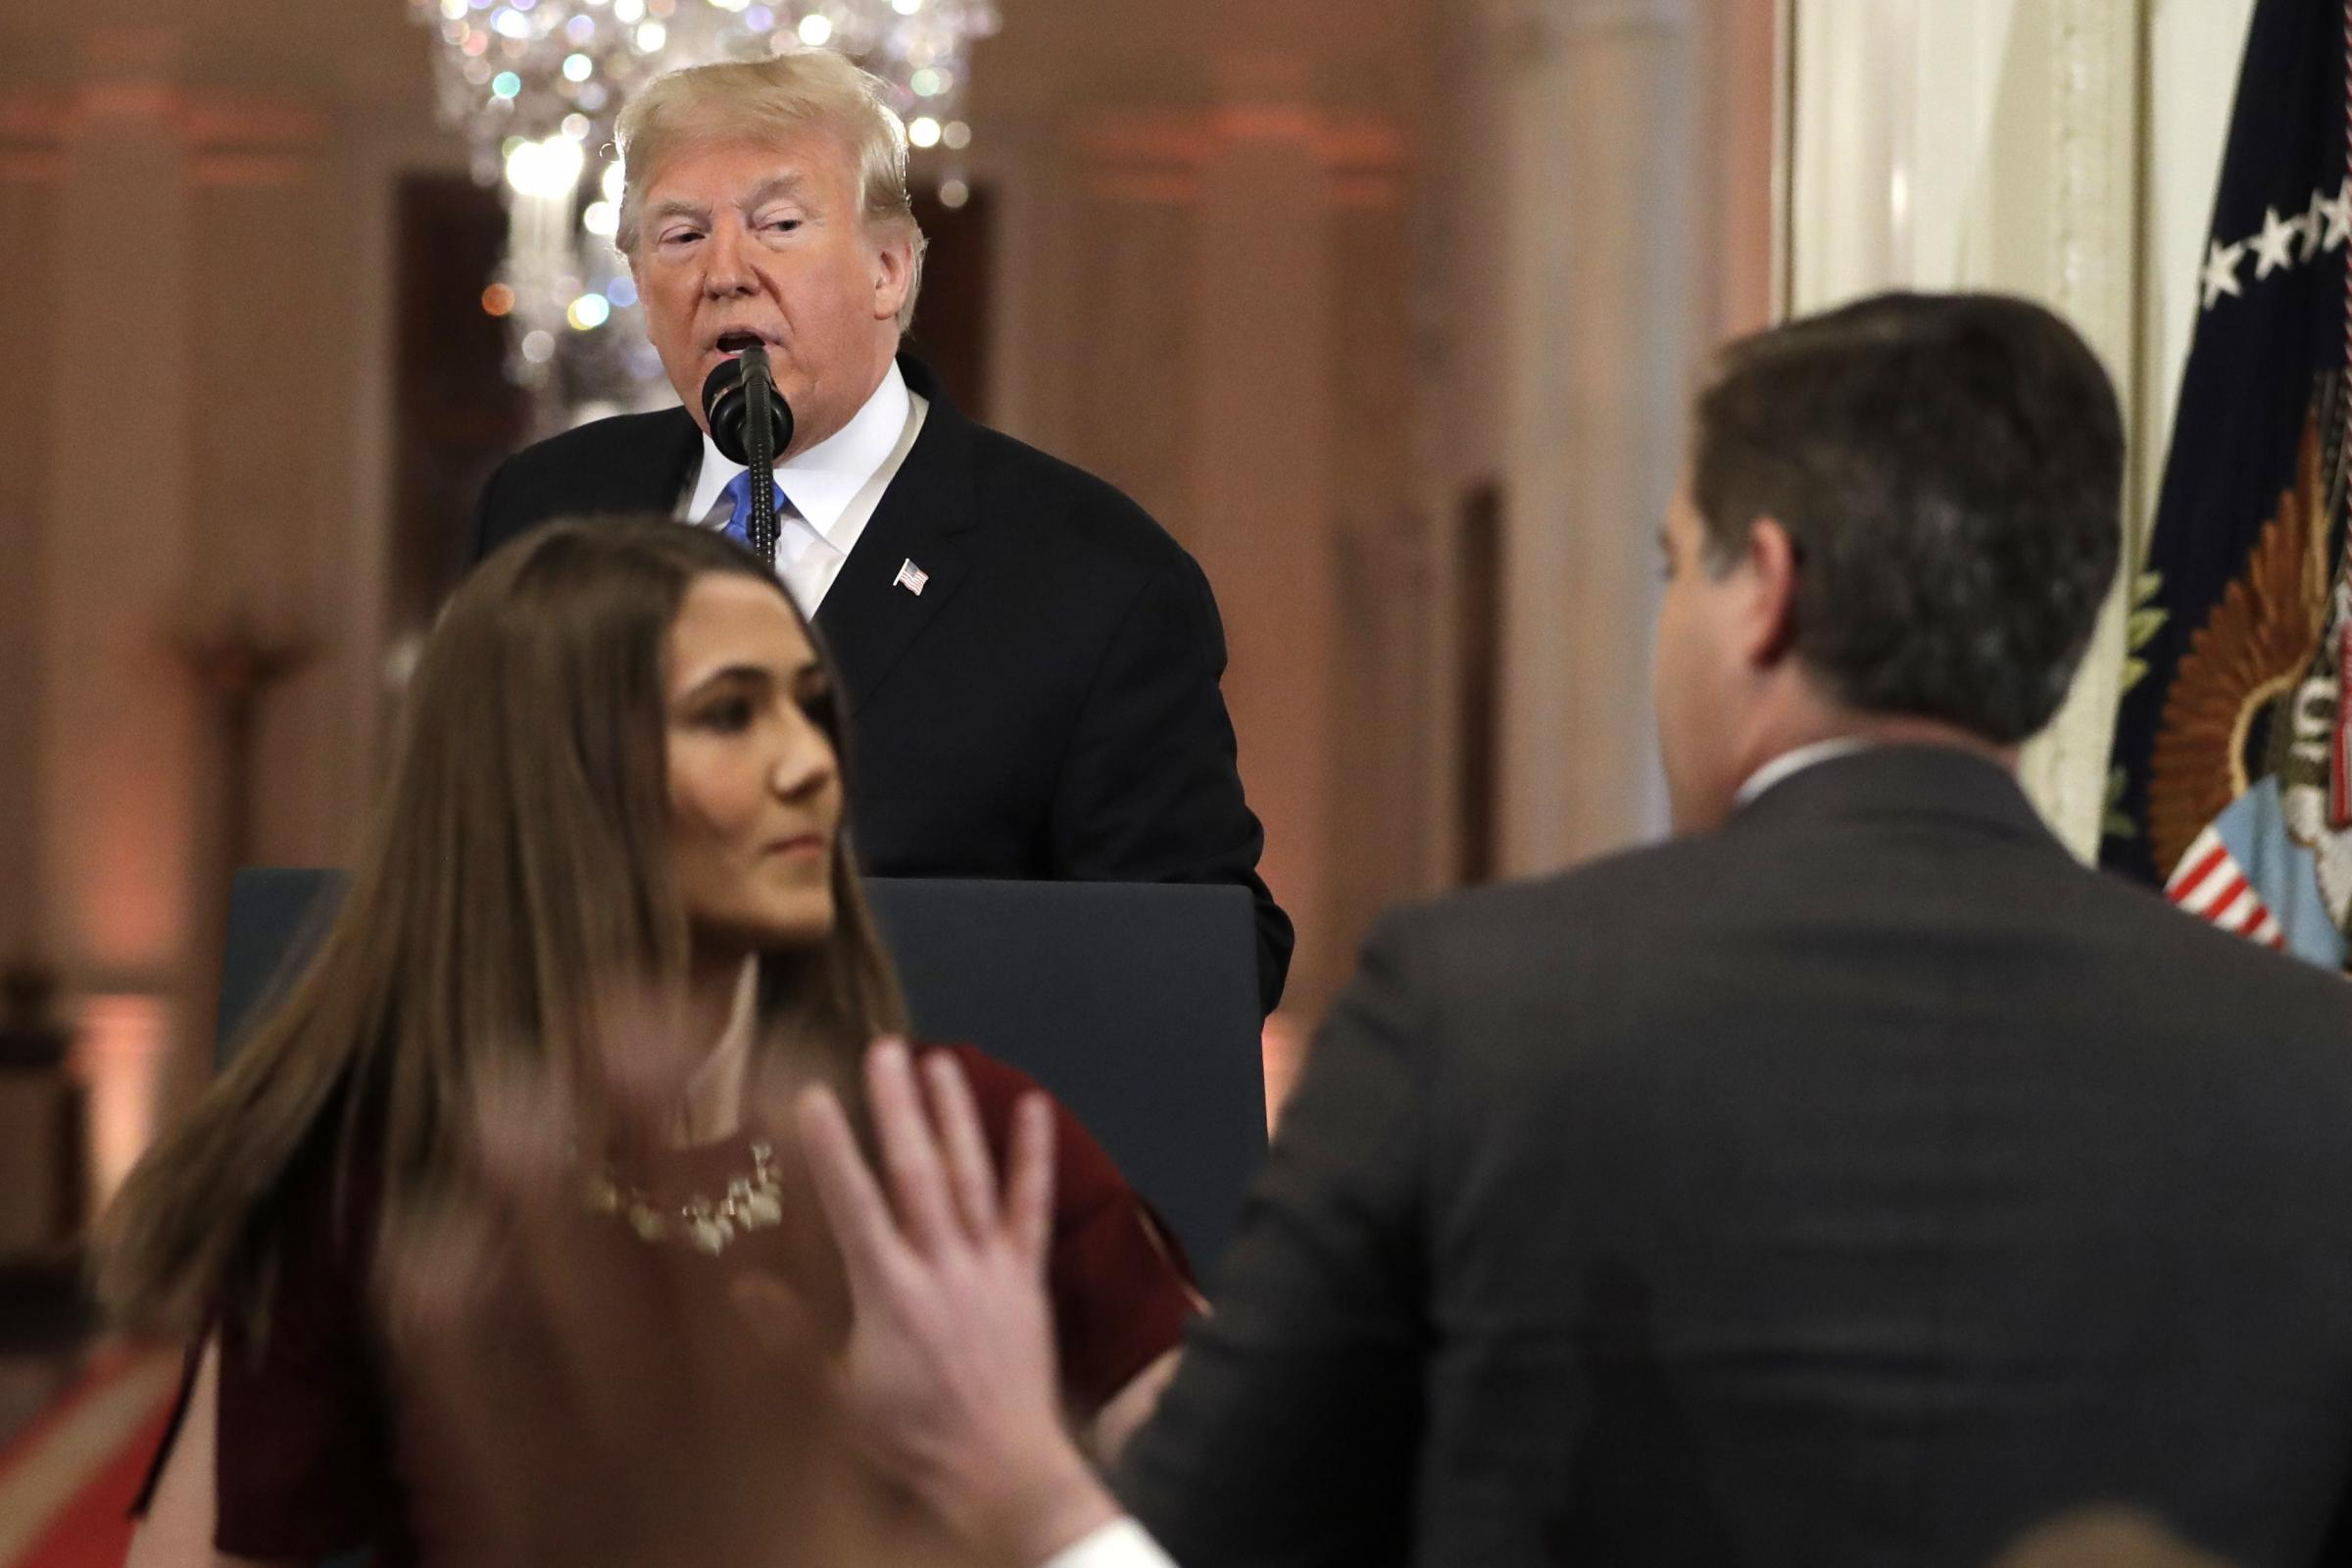 President Donald Trump looks on as a White House aide takes away a microphone from CNN journalist Jim Acosta